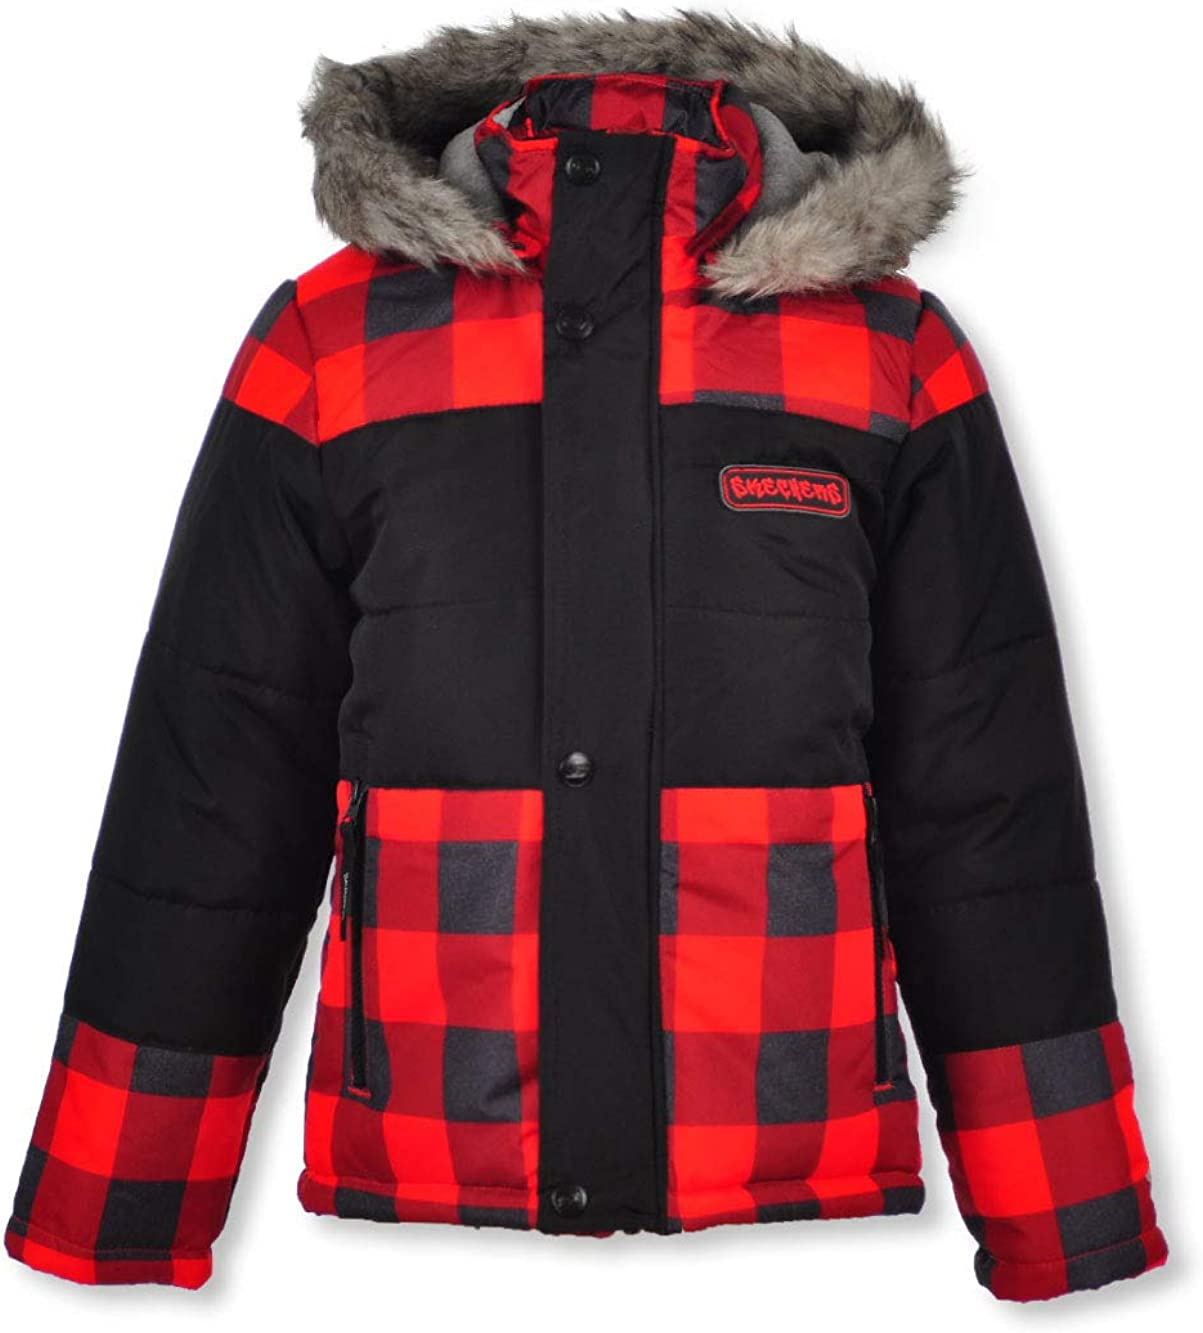 Skechers Boys' Heavyweight Winter Jacket Limited time sale Hood with New color